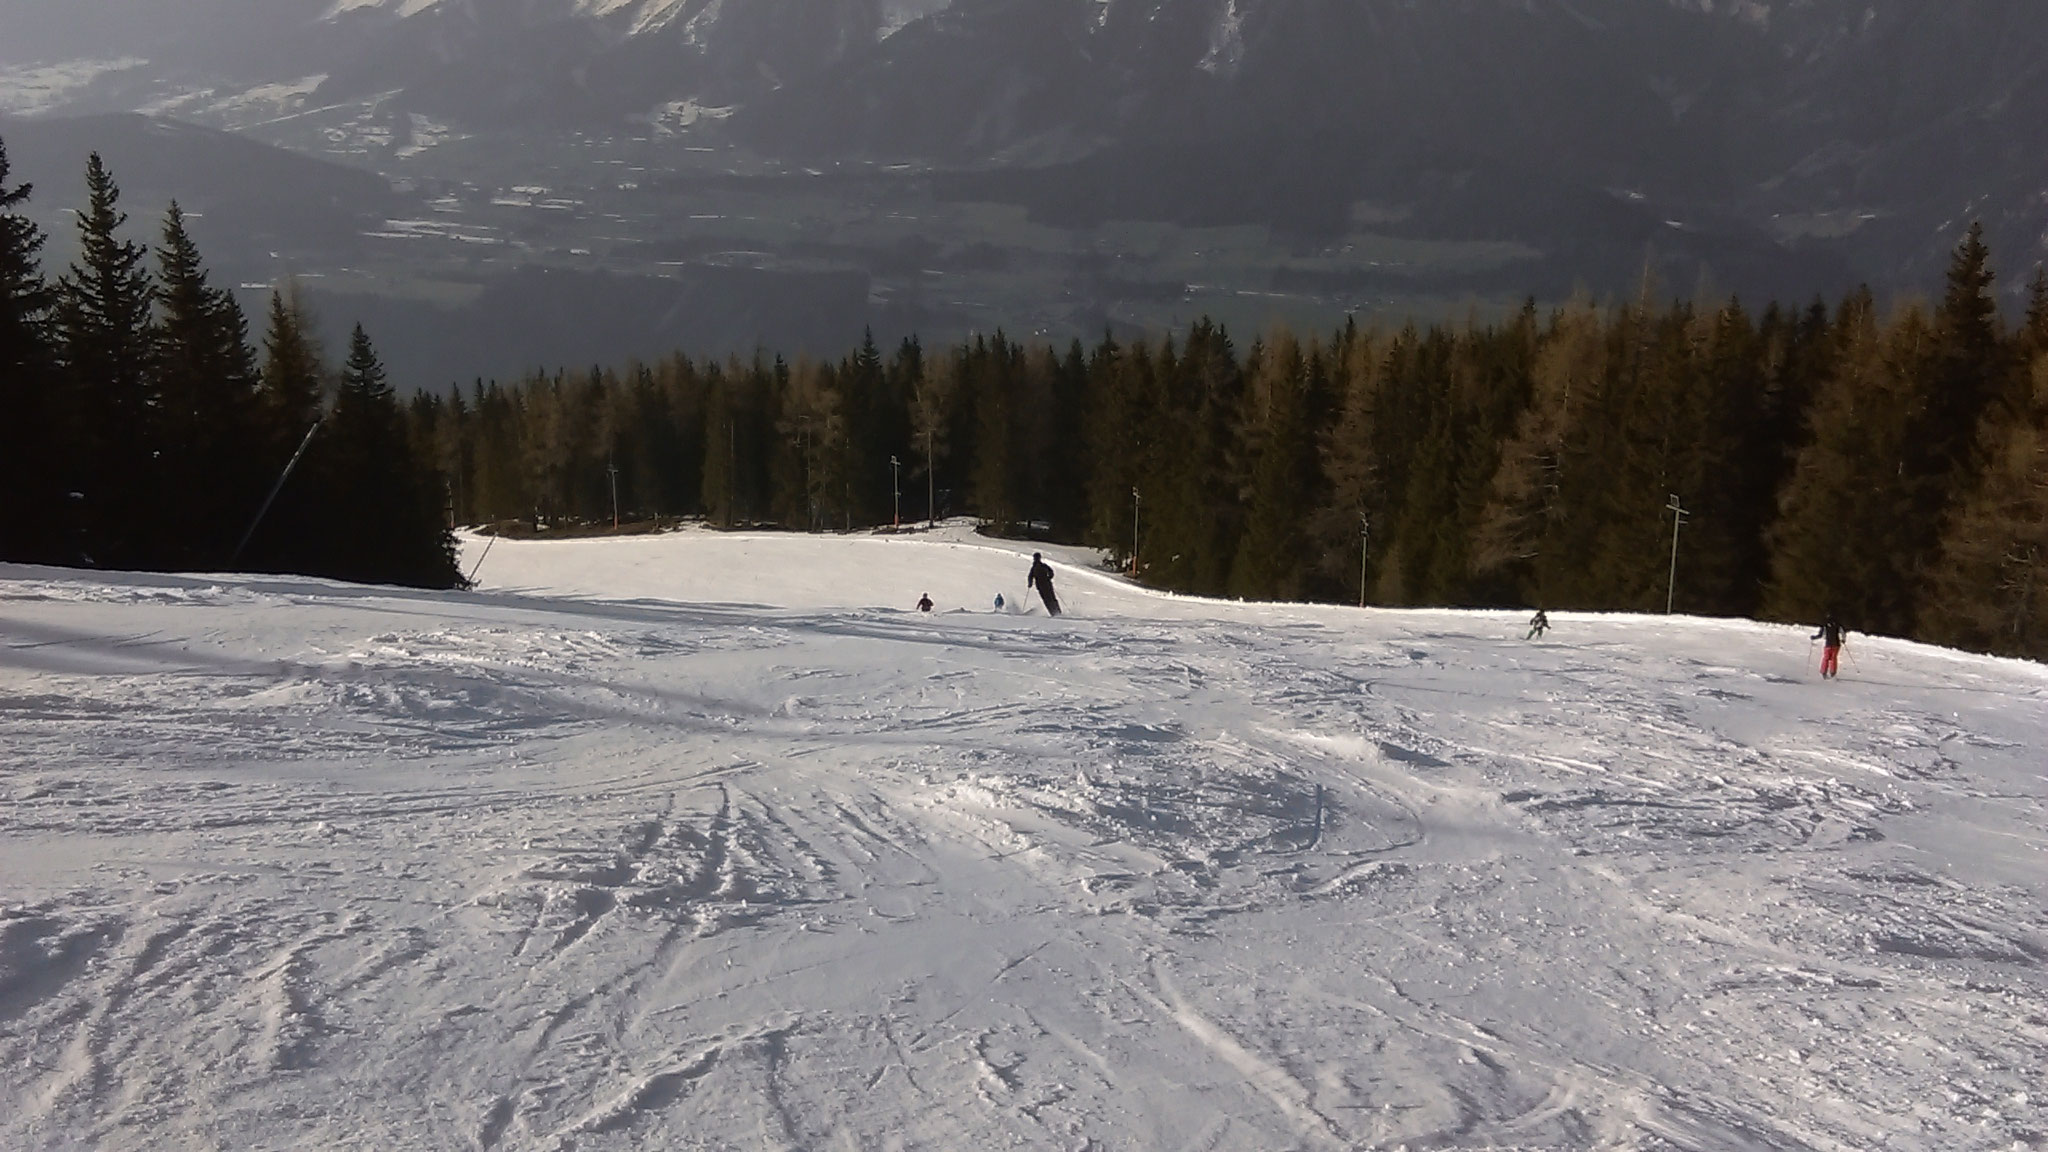 Downhill skiing on Planai